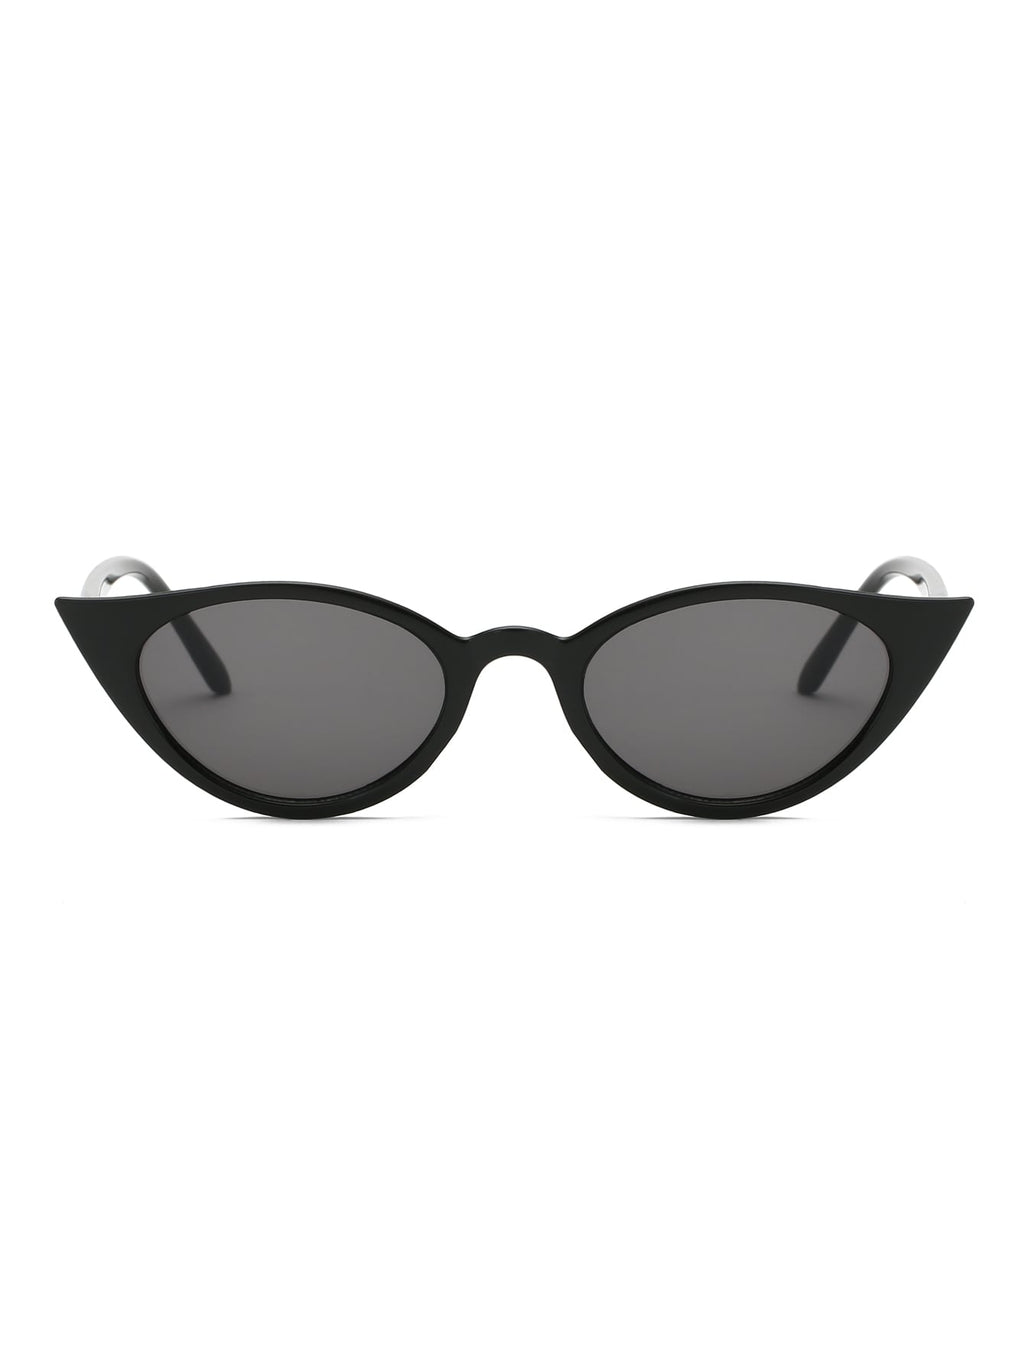 Sunglasses For Women - Skinny Frame Cat Eye Sunglasses